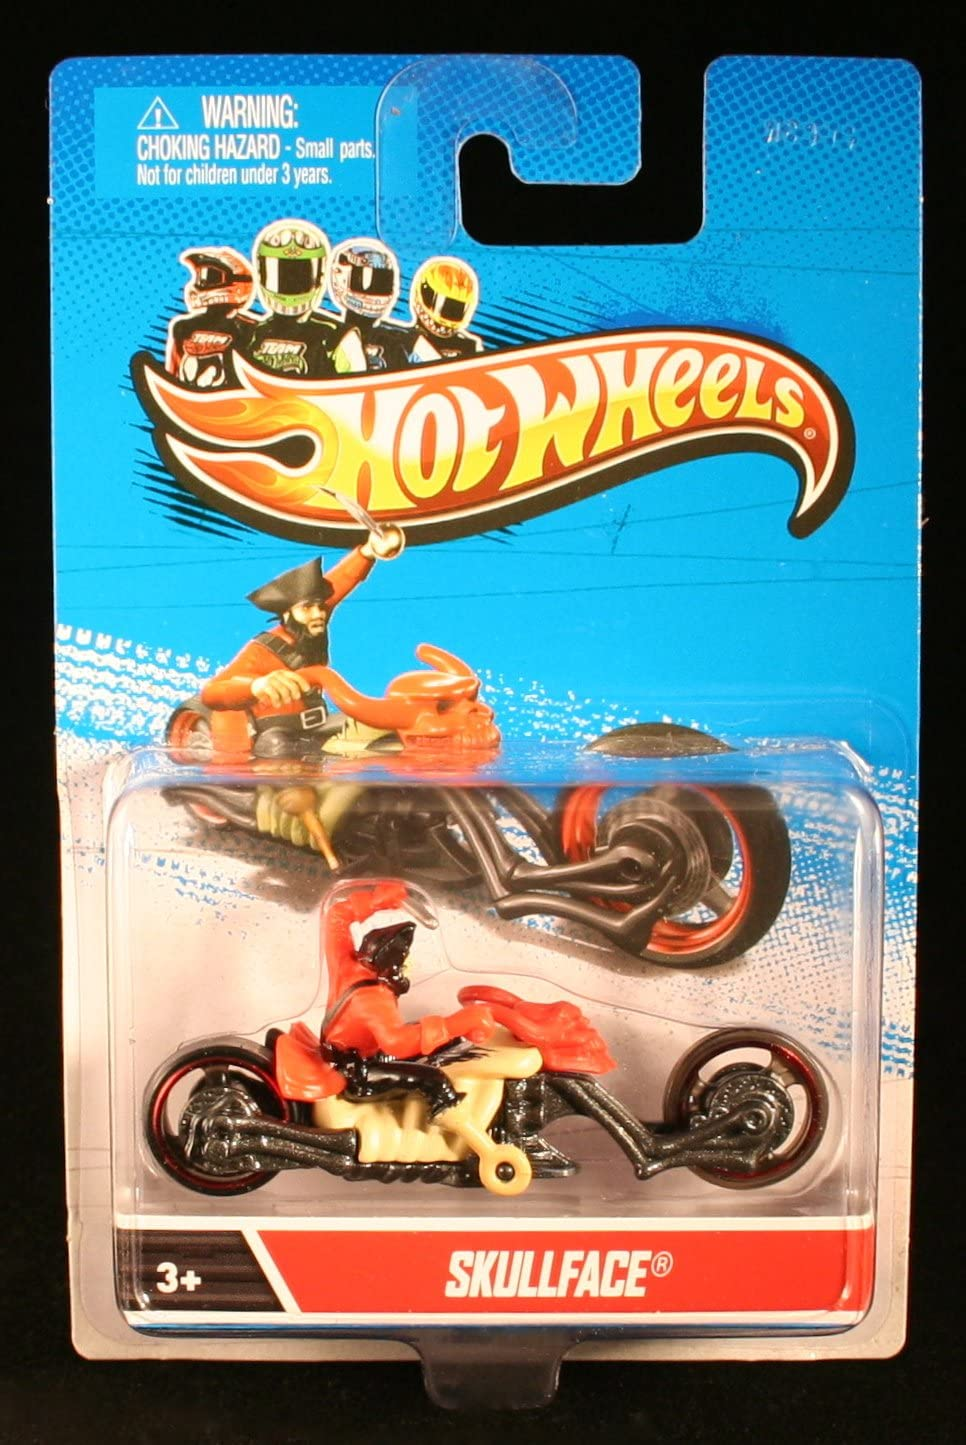 SKULLFACE DIECAST MOTORCYCLE BIKE WITH RIDER 1:64 SCALE 2012 Hot Wheels